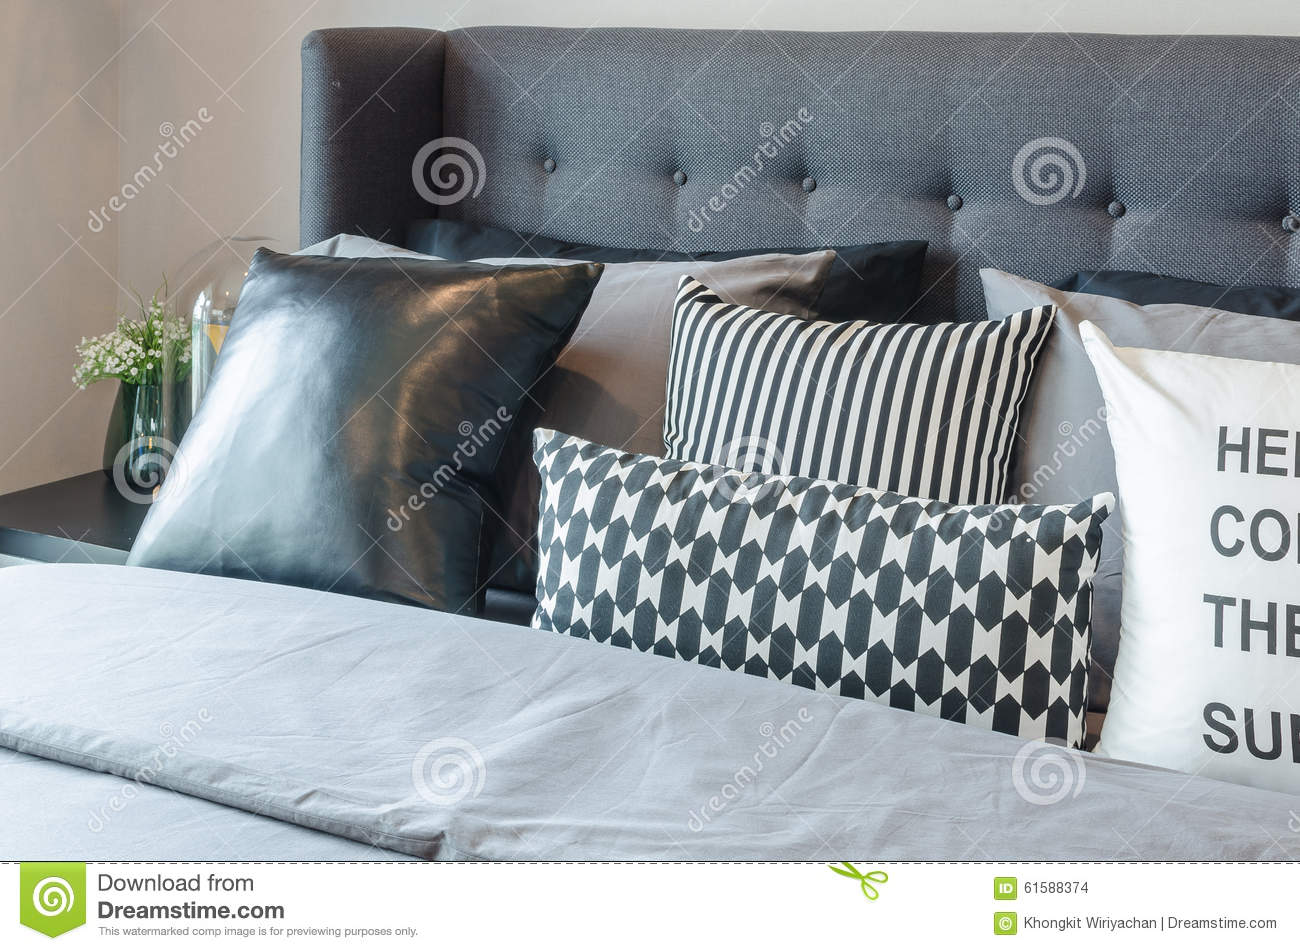 Black And White Pillows On Modern Bed Stock Photo - Image: 61588374